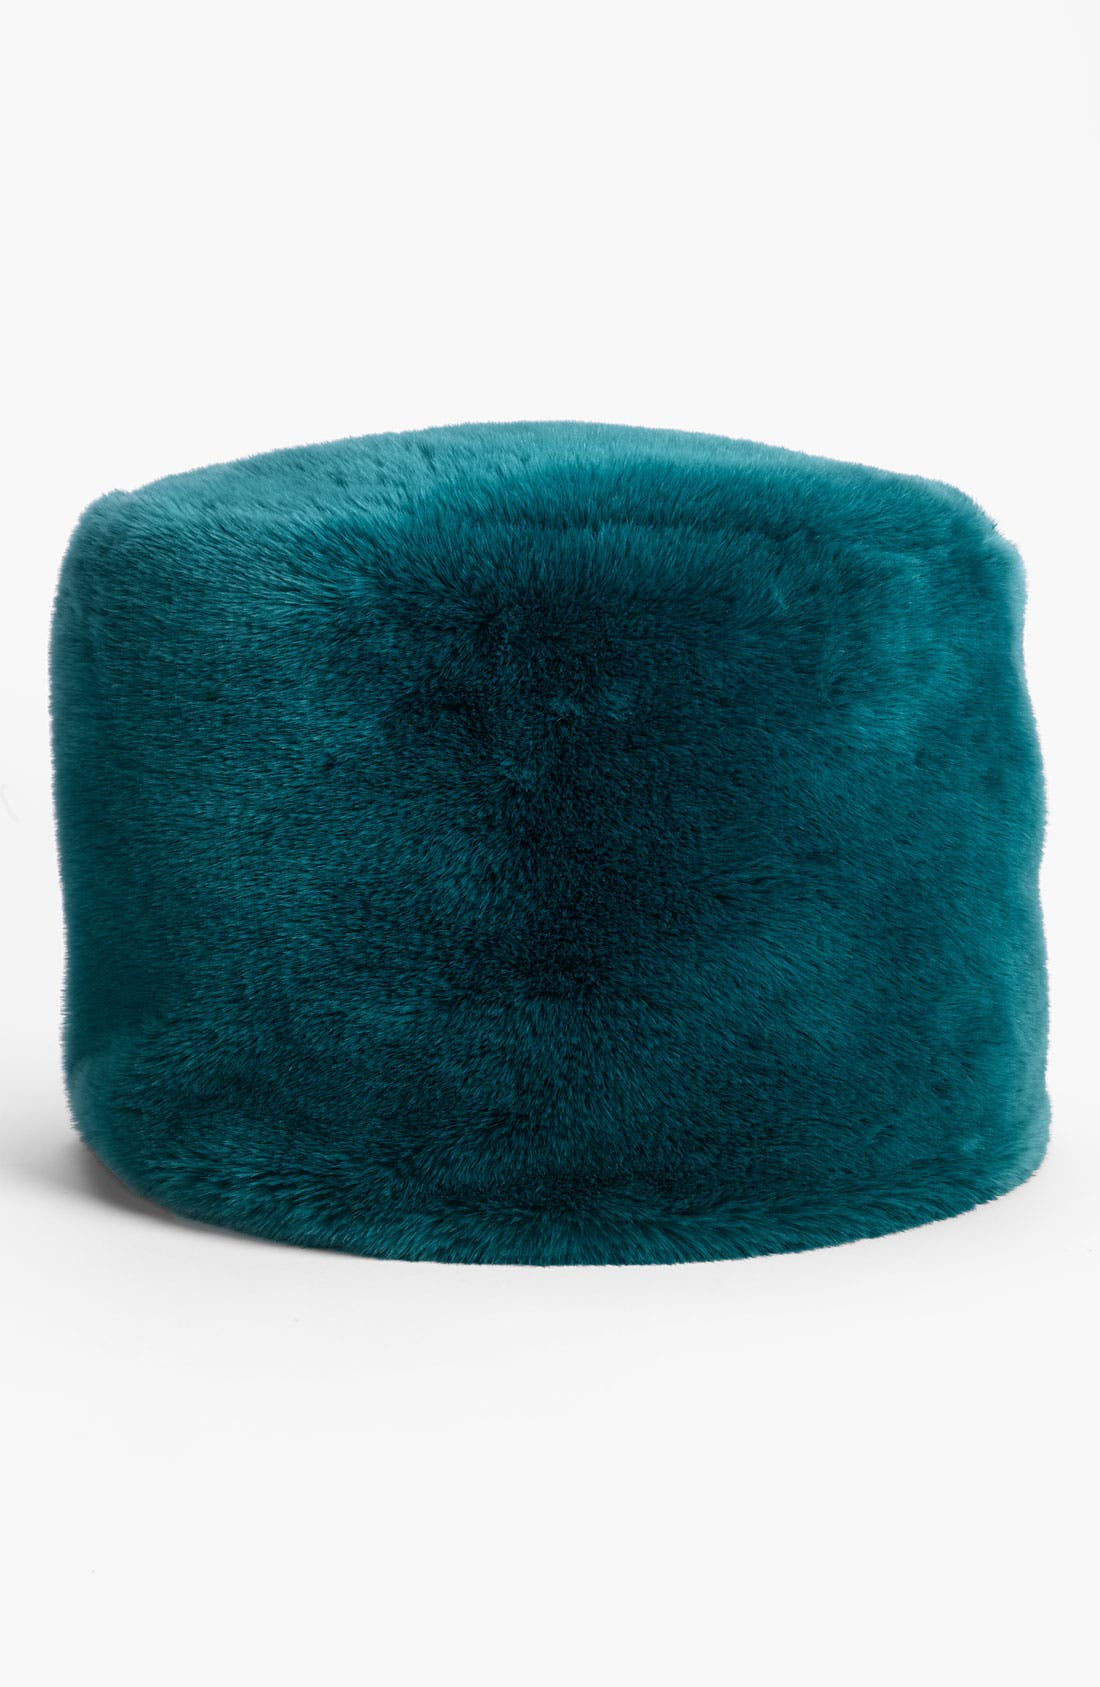 Alternate Image 1 Selected - Nordstrom at Home 'Jolly' Faux Fur Pouf